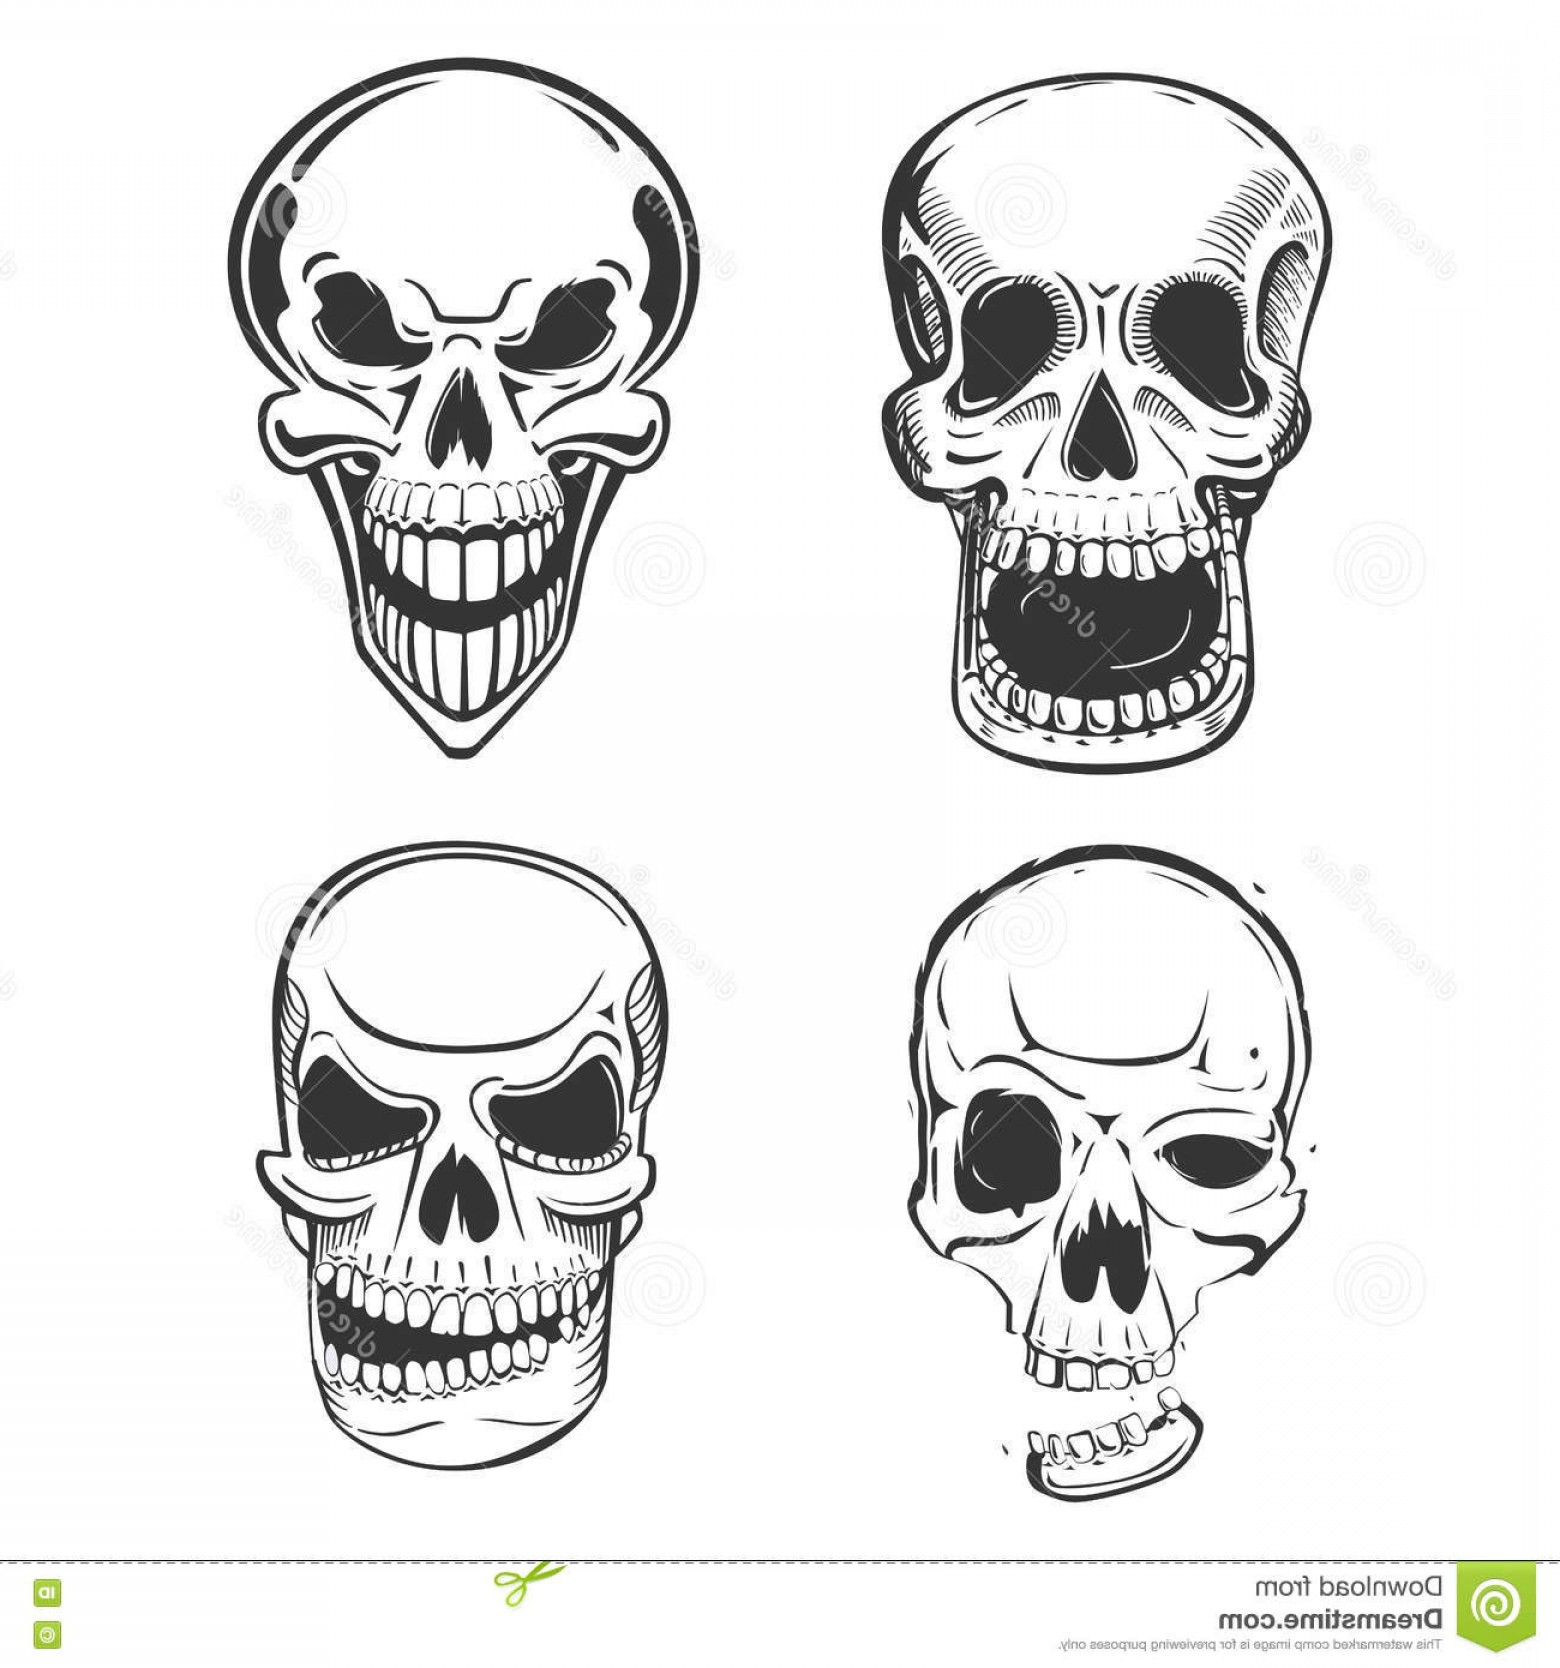 His And Hers Skulls Vector: Stock Illustration Skull Vector Tattoo Art Sketch Style Set Terrifying Head Jaw Smirk May Be Used Mascot Pirate Image